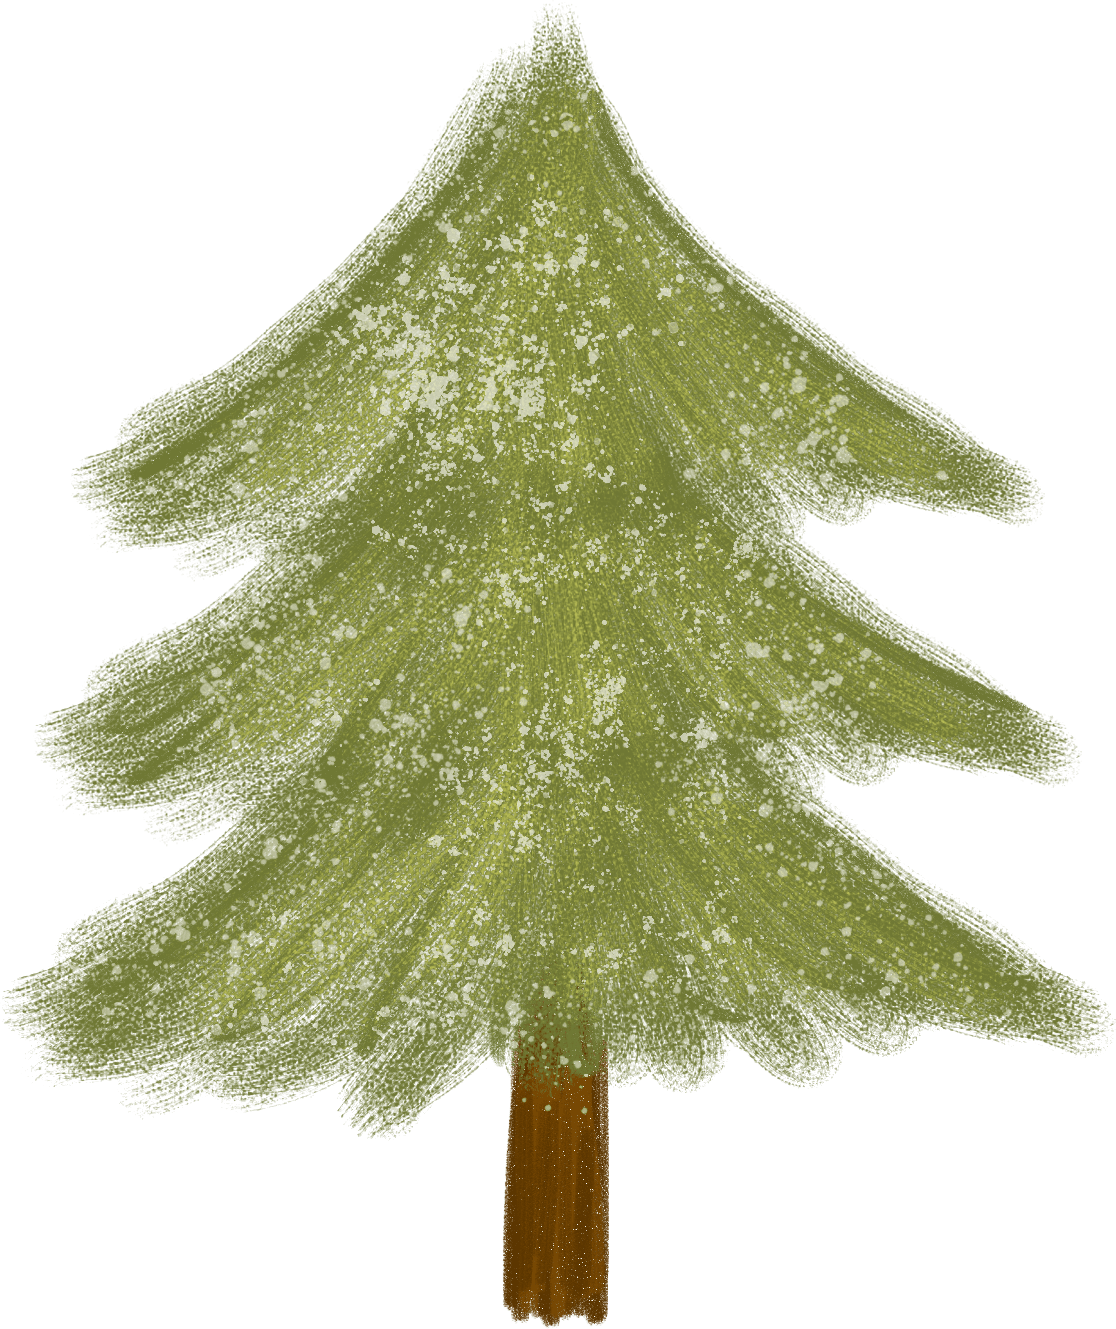 Free handmade Christmas tree png to download